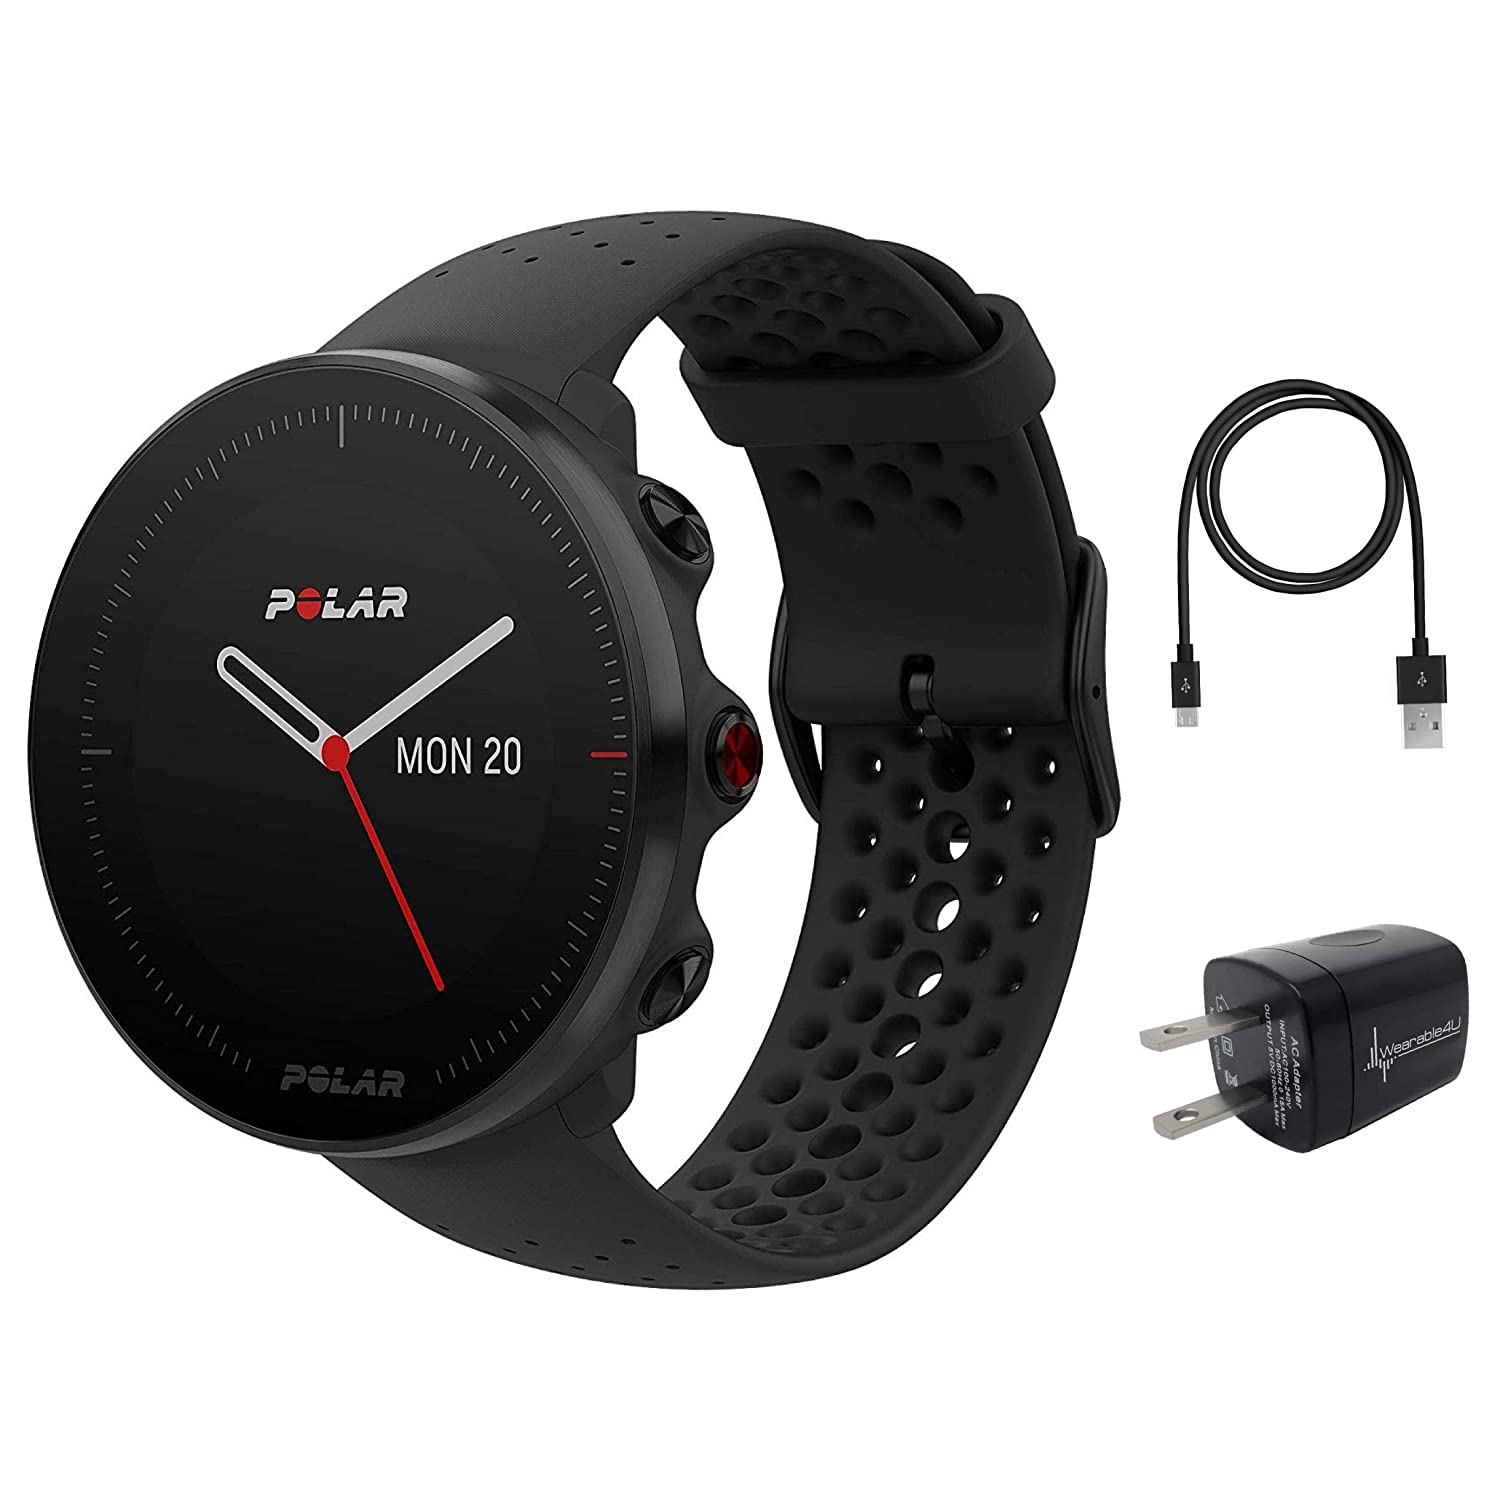 Polar Vantage M Advanced Multisport GPS Watch and Wearable4U Wall Charger Bundle M L 140-210mm Wrist , Black